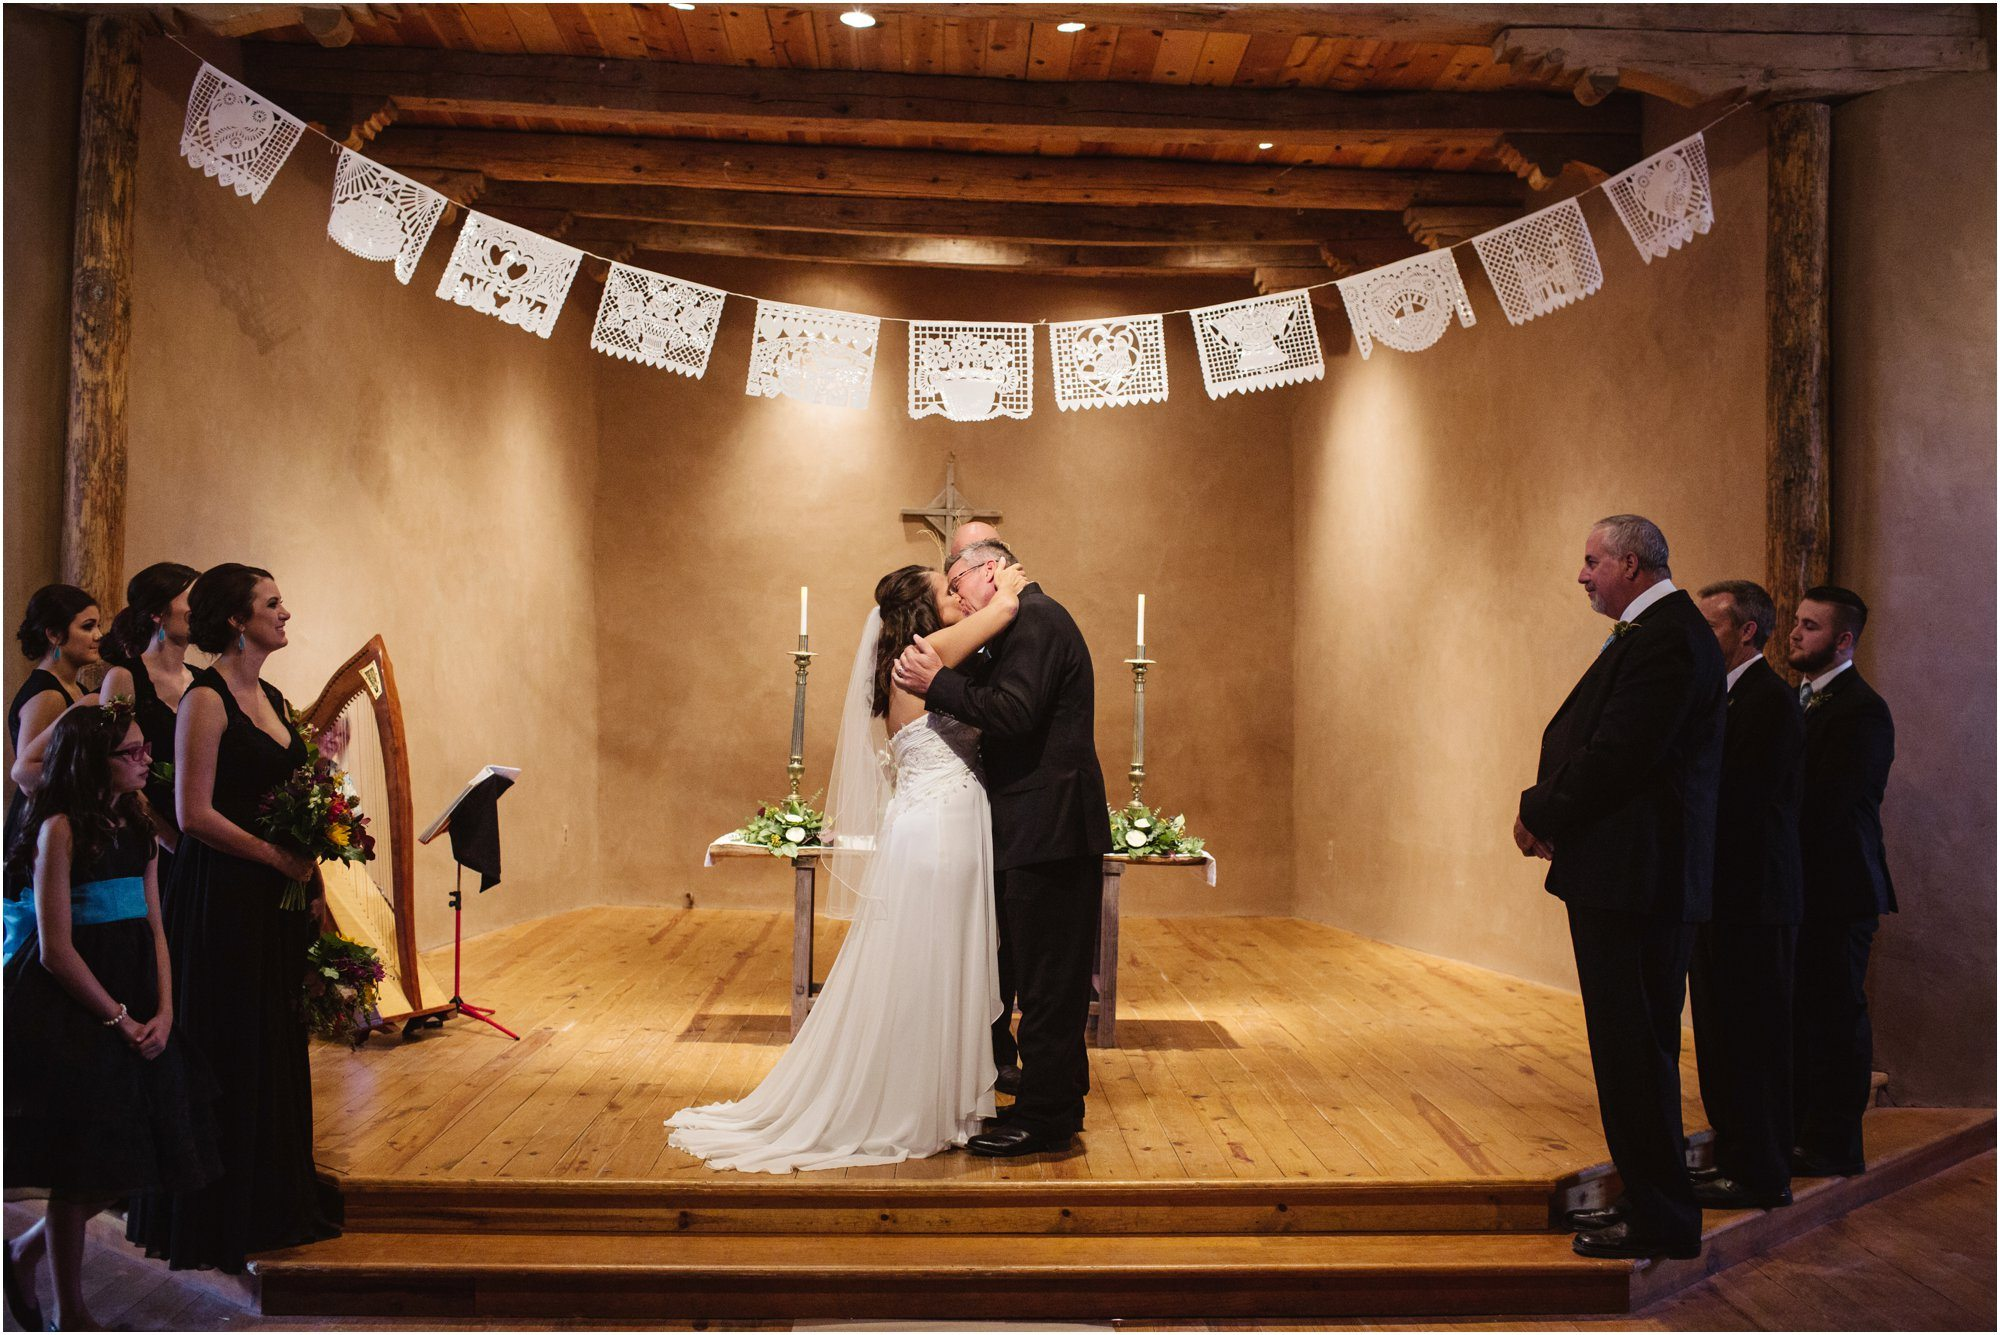 049BlueRosePhotography_ Albuquerque wedding photographers